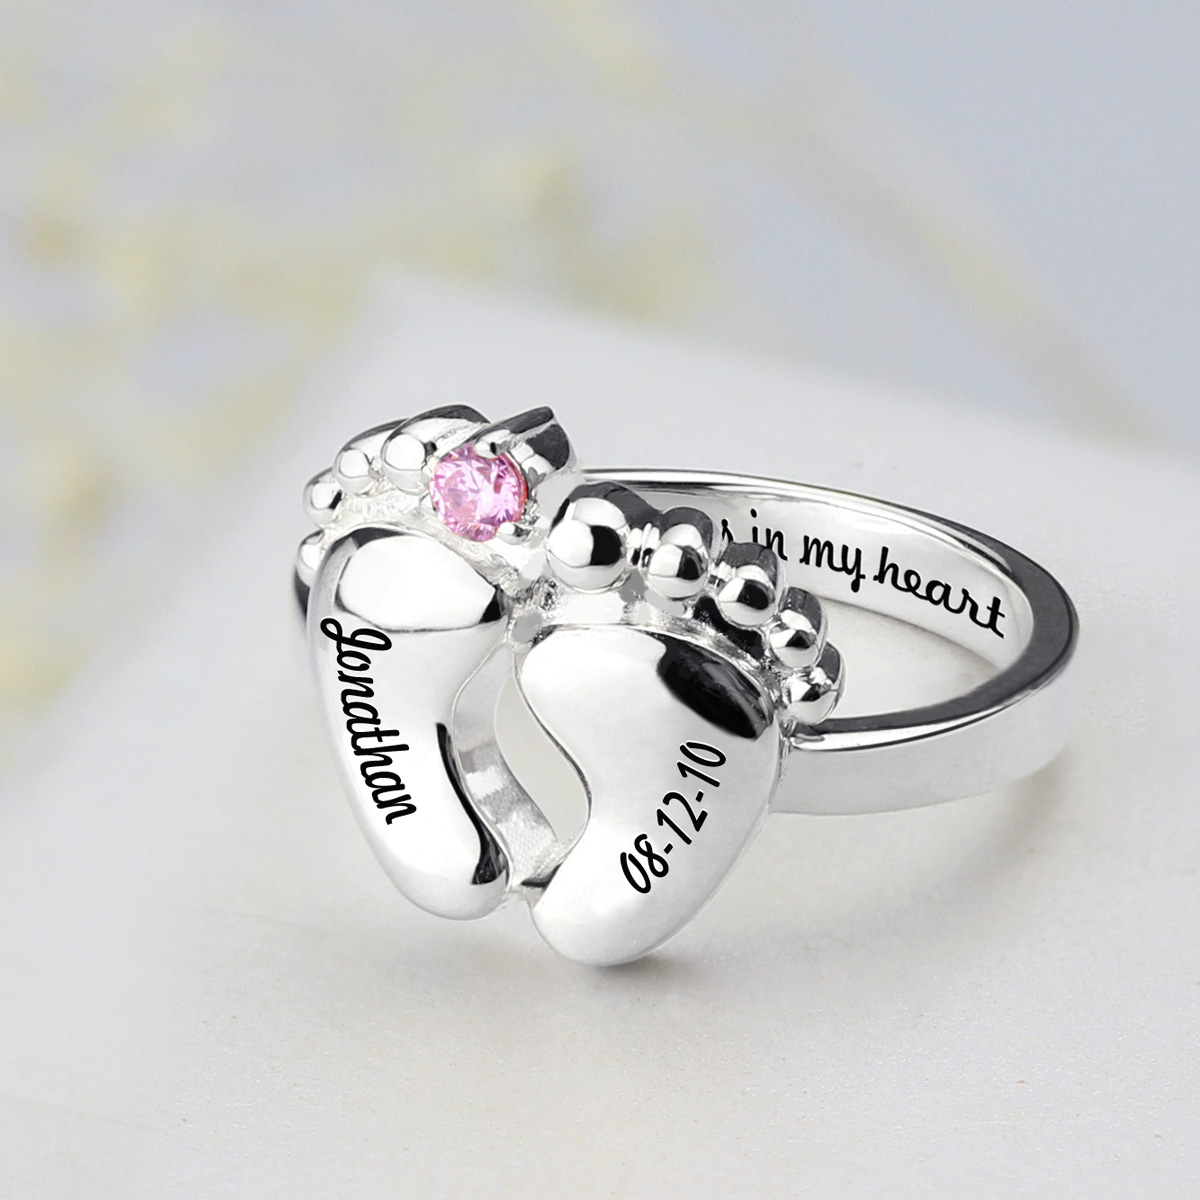 Baby Feet Ring With Birthtone Date Ring For Mothers